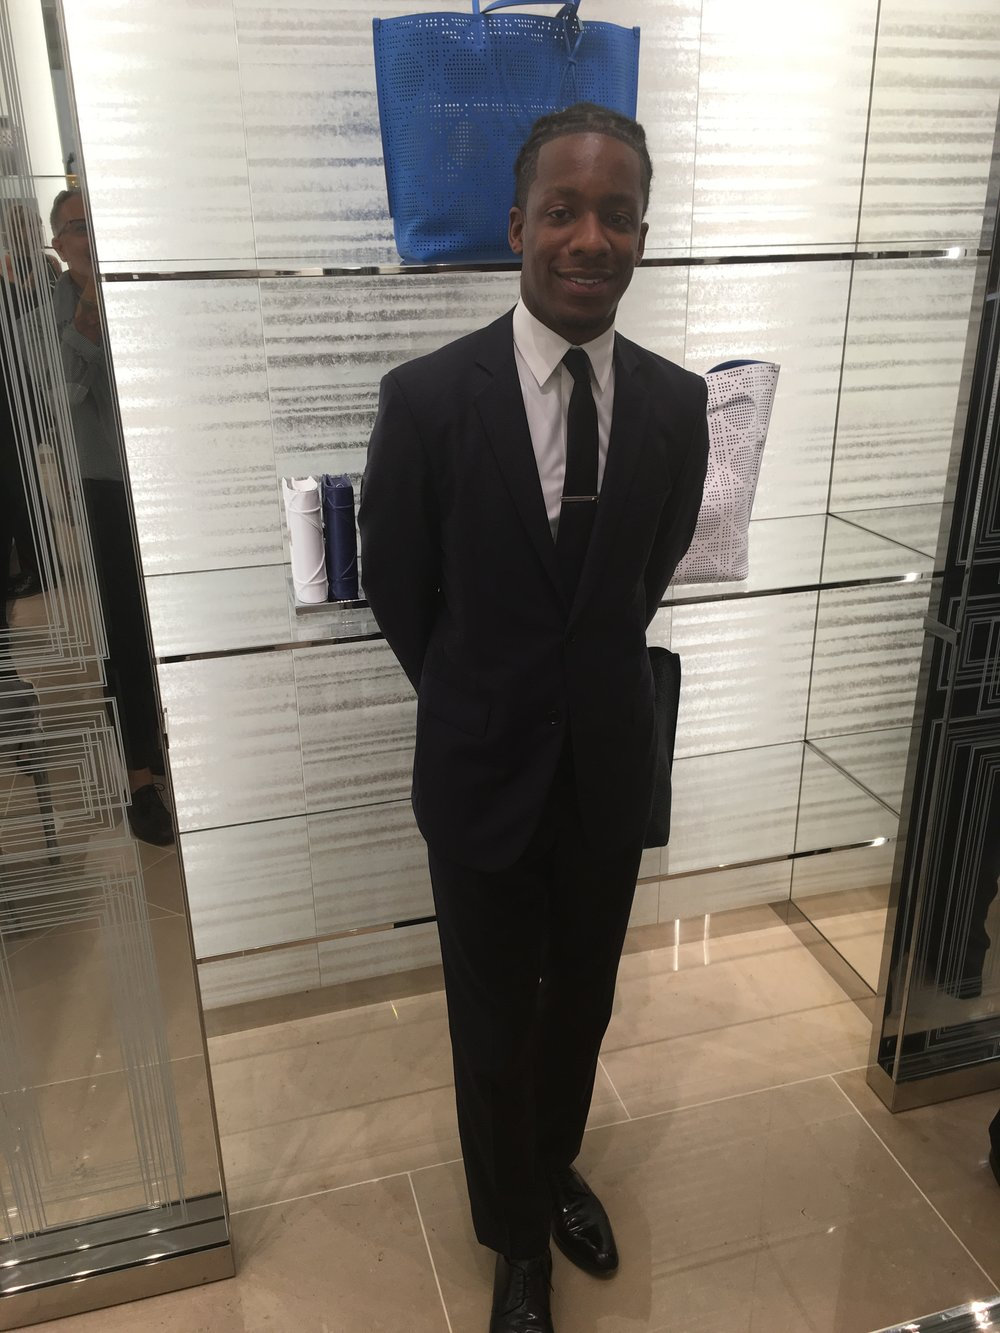 Kalen at Dior will take very good care of you!